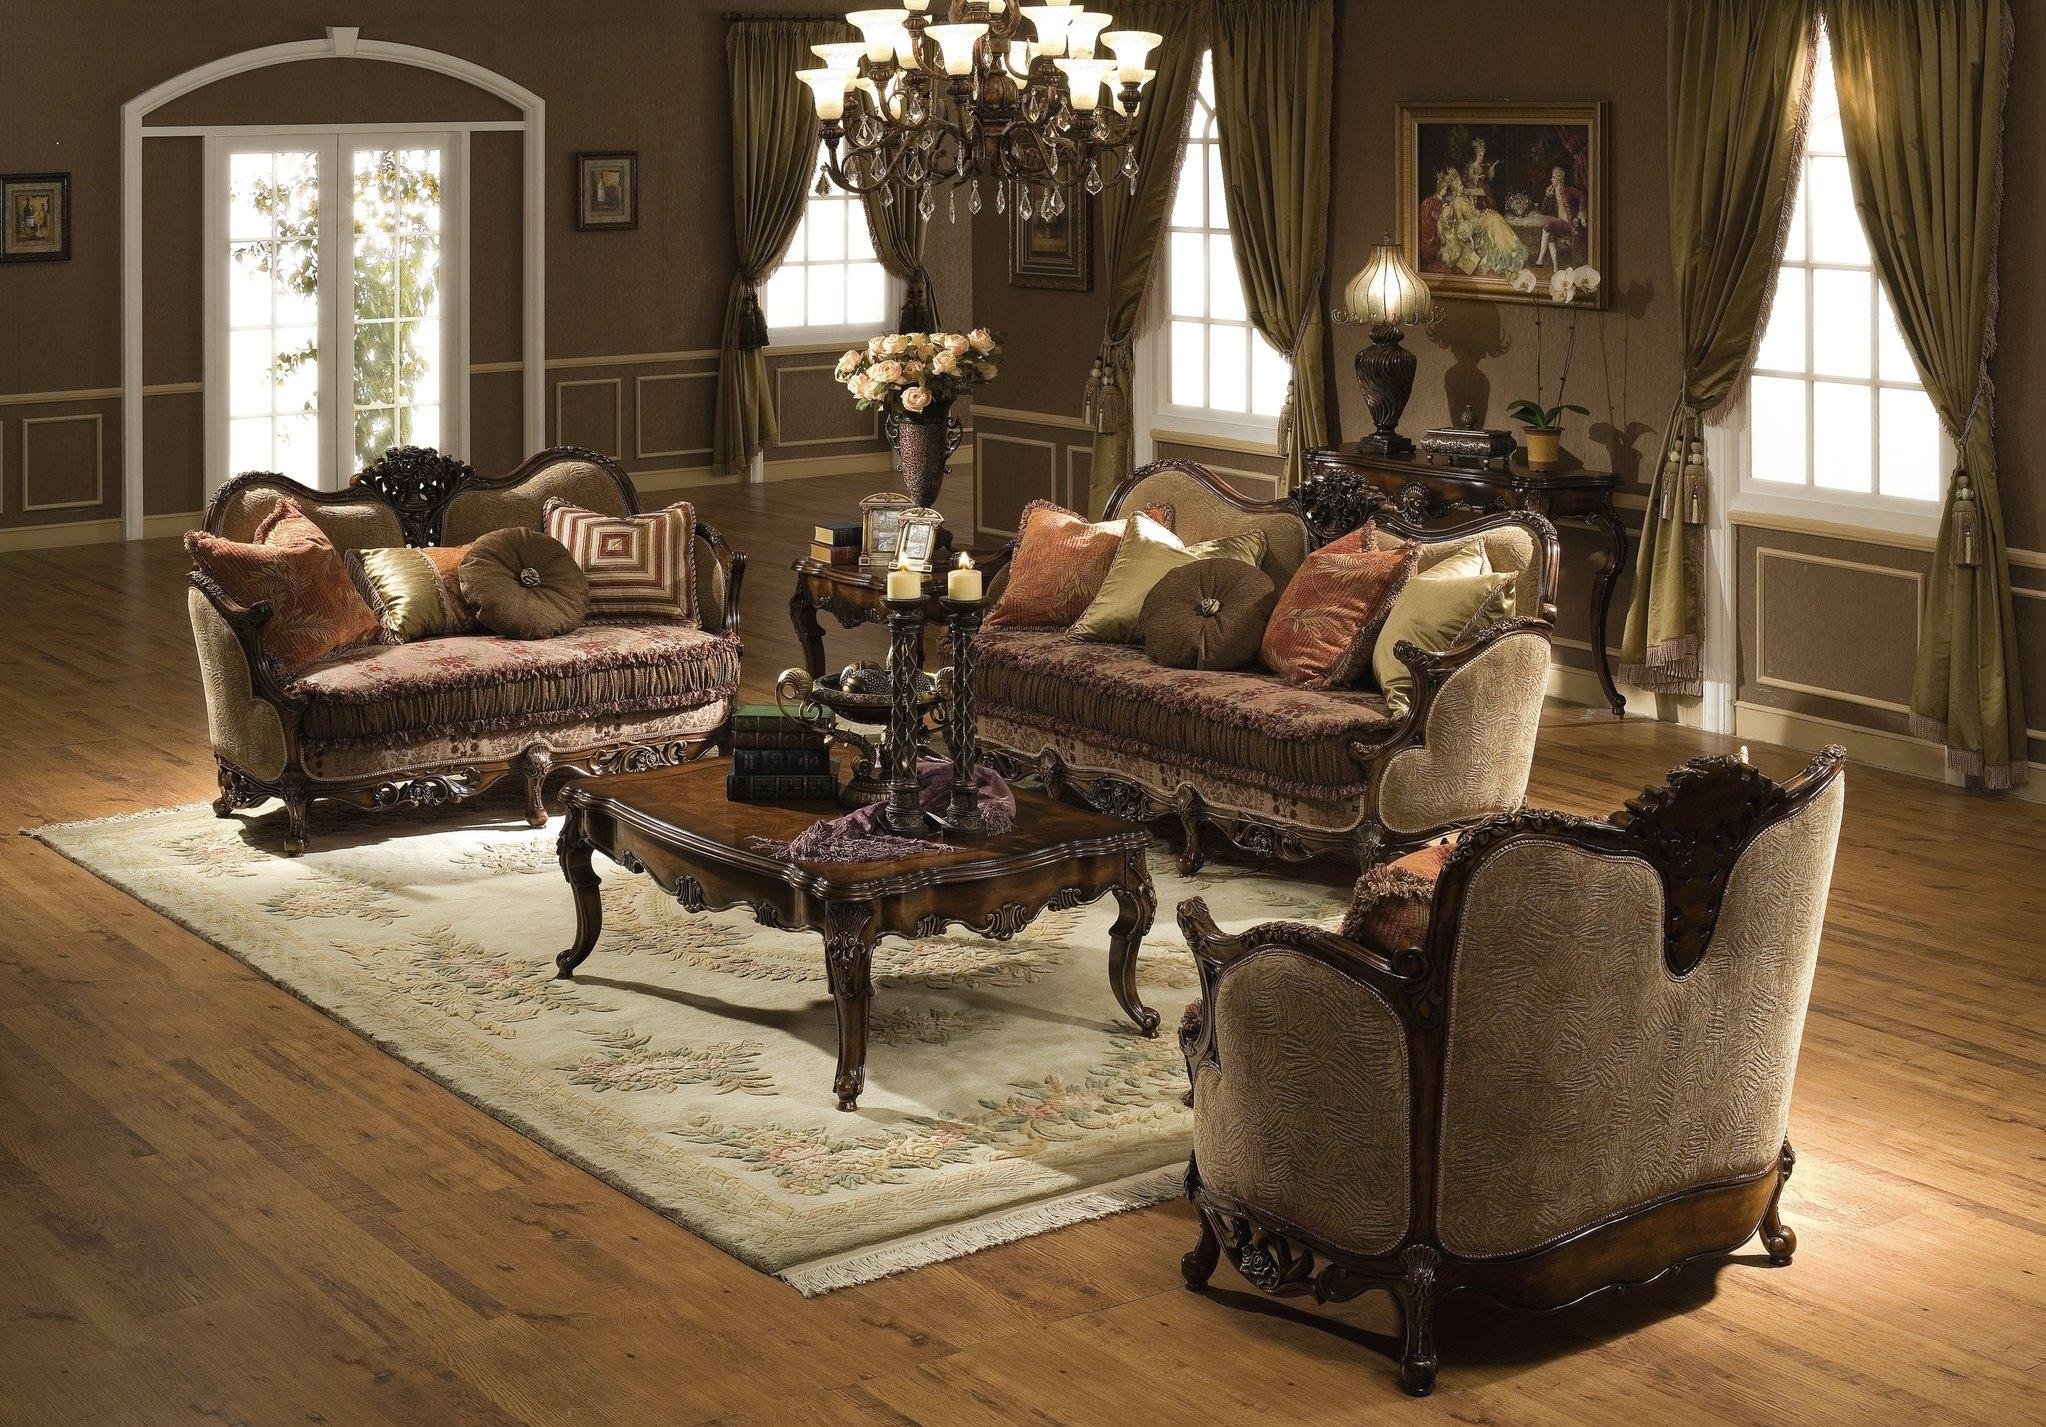 Living Room Furniture | Living Room Sets | Sofas | Couches Intended For Traditional Sectional Sofas Living Room Furniture (View 5 of 20)